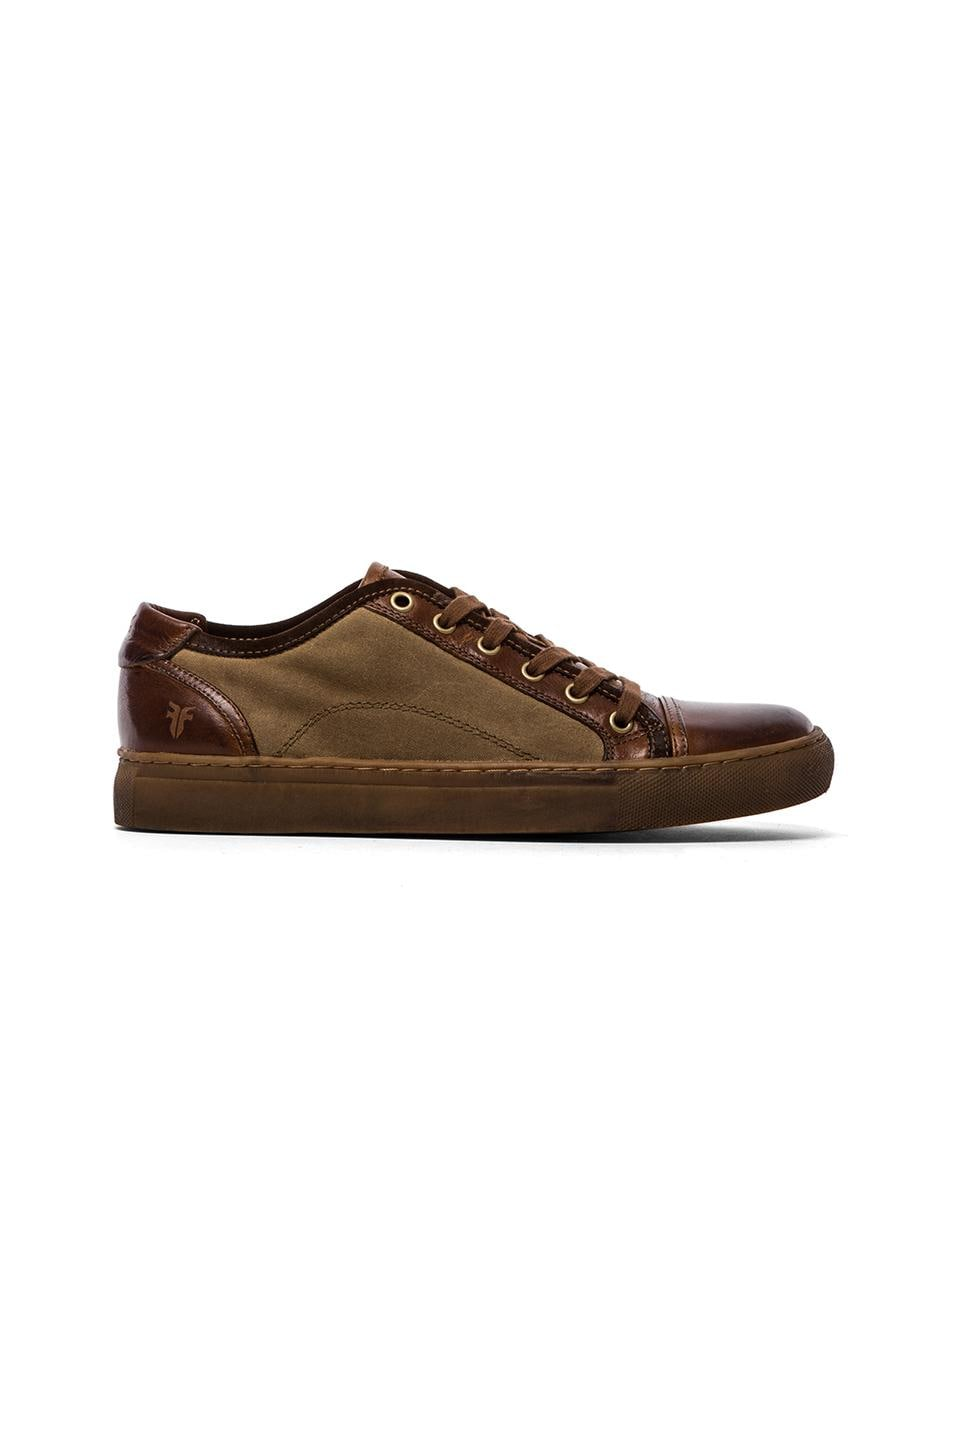 Frye Justin Low Lace Sneaker in Cognac